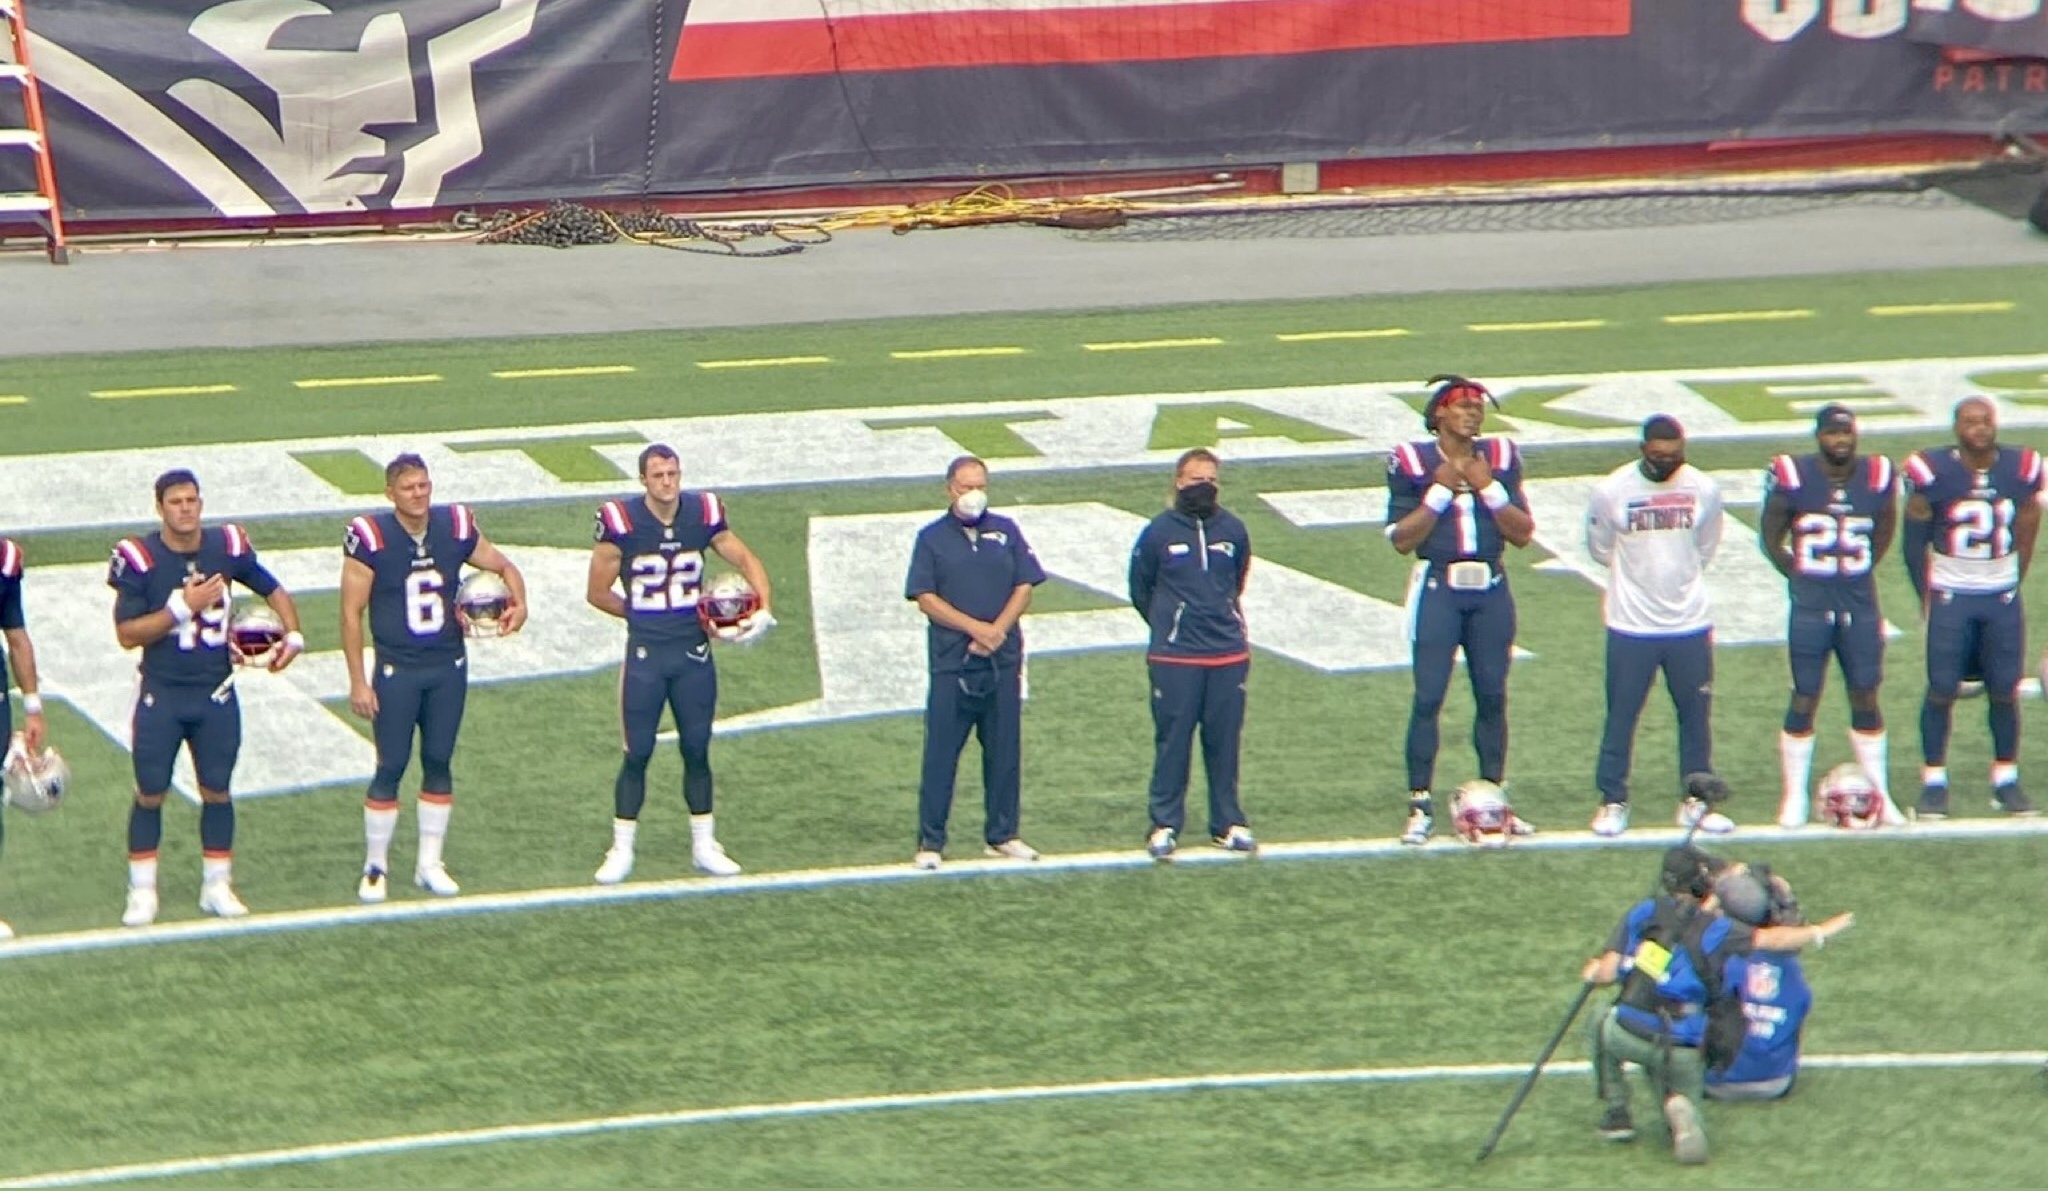 All Patriots stood during the national anthem